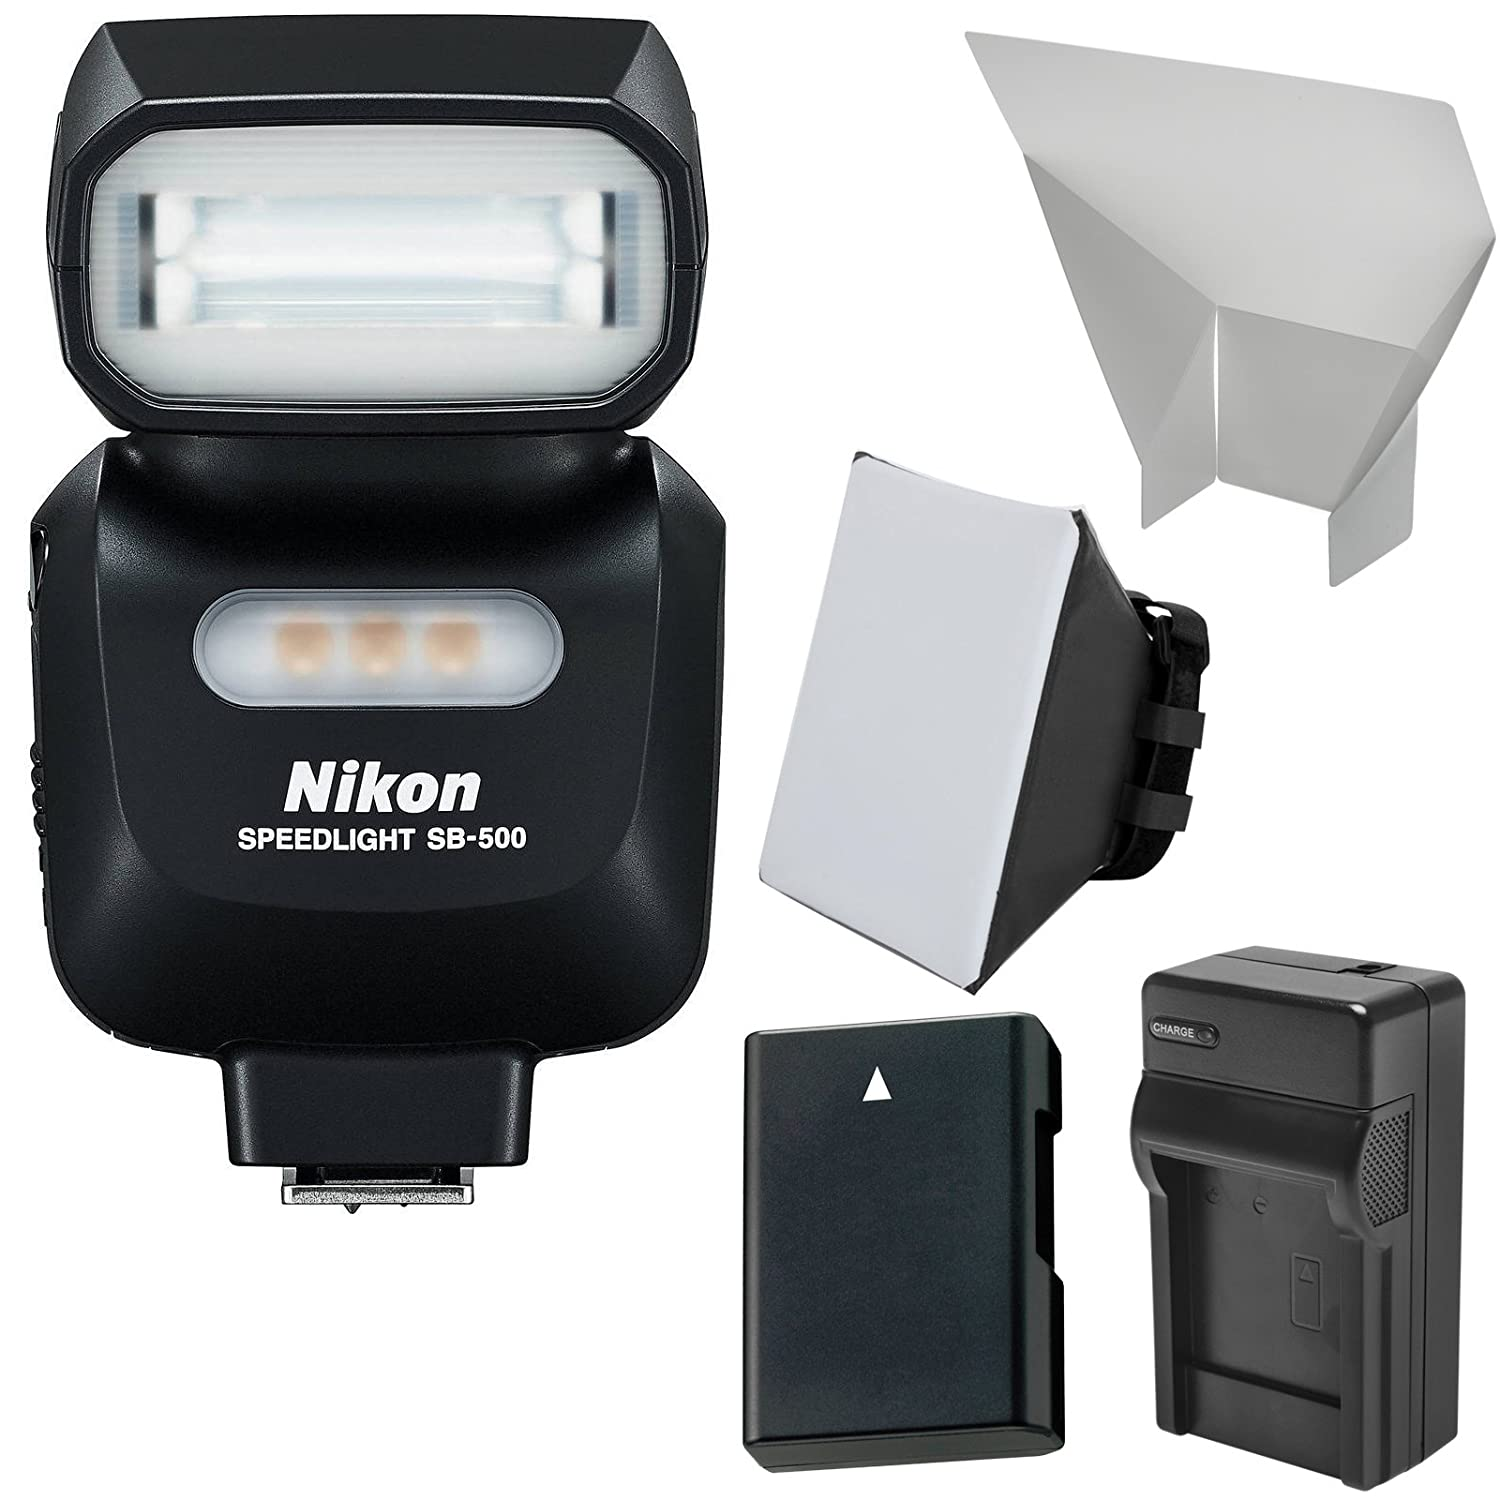 nikon-sb-500-af-speedlight-flash-led-video-light-en-el14-battery-charger-softbox-reflector-kit-for-d3200-d3300-d5100-d5200-d5300-camera